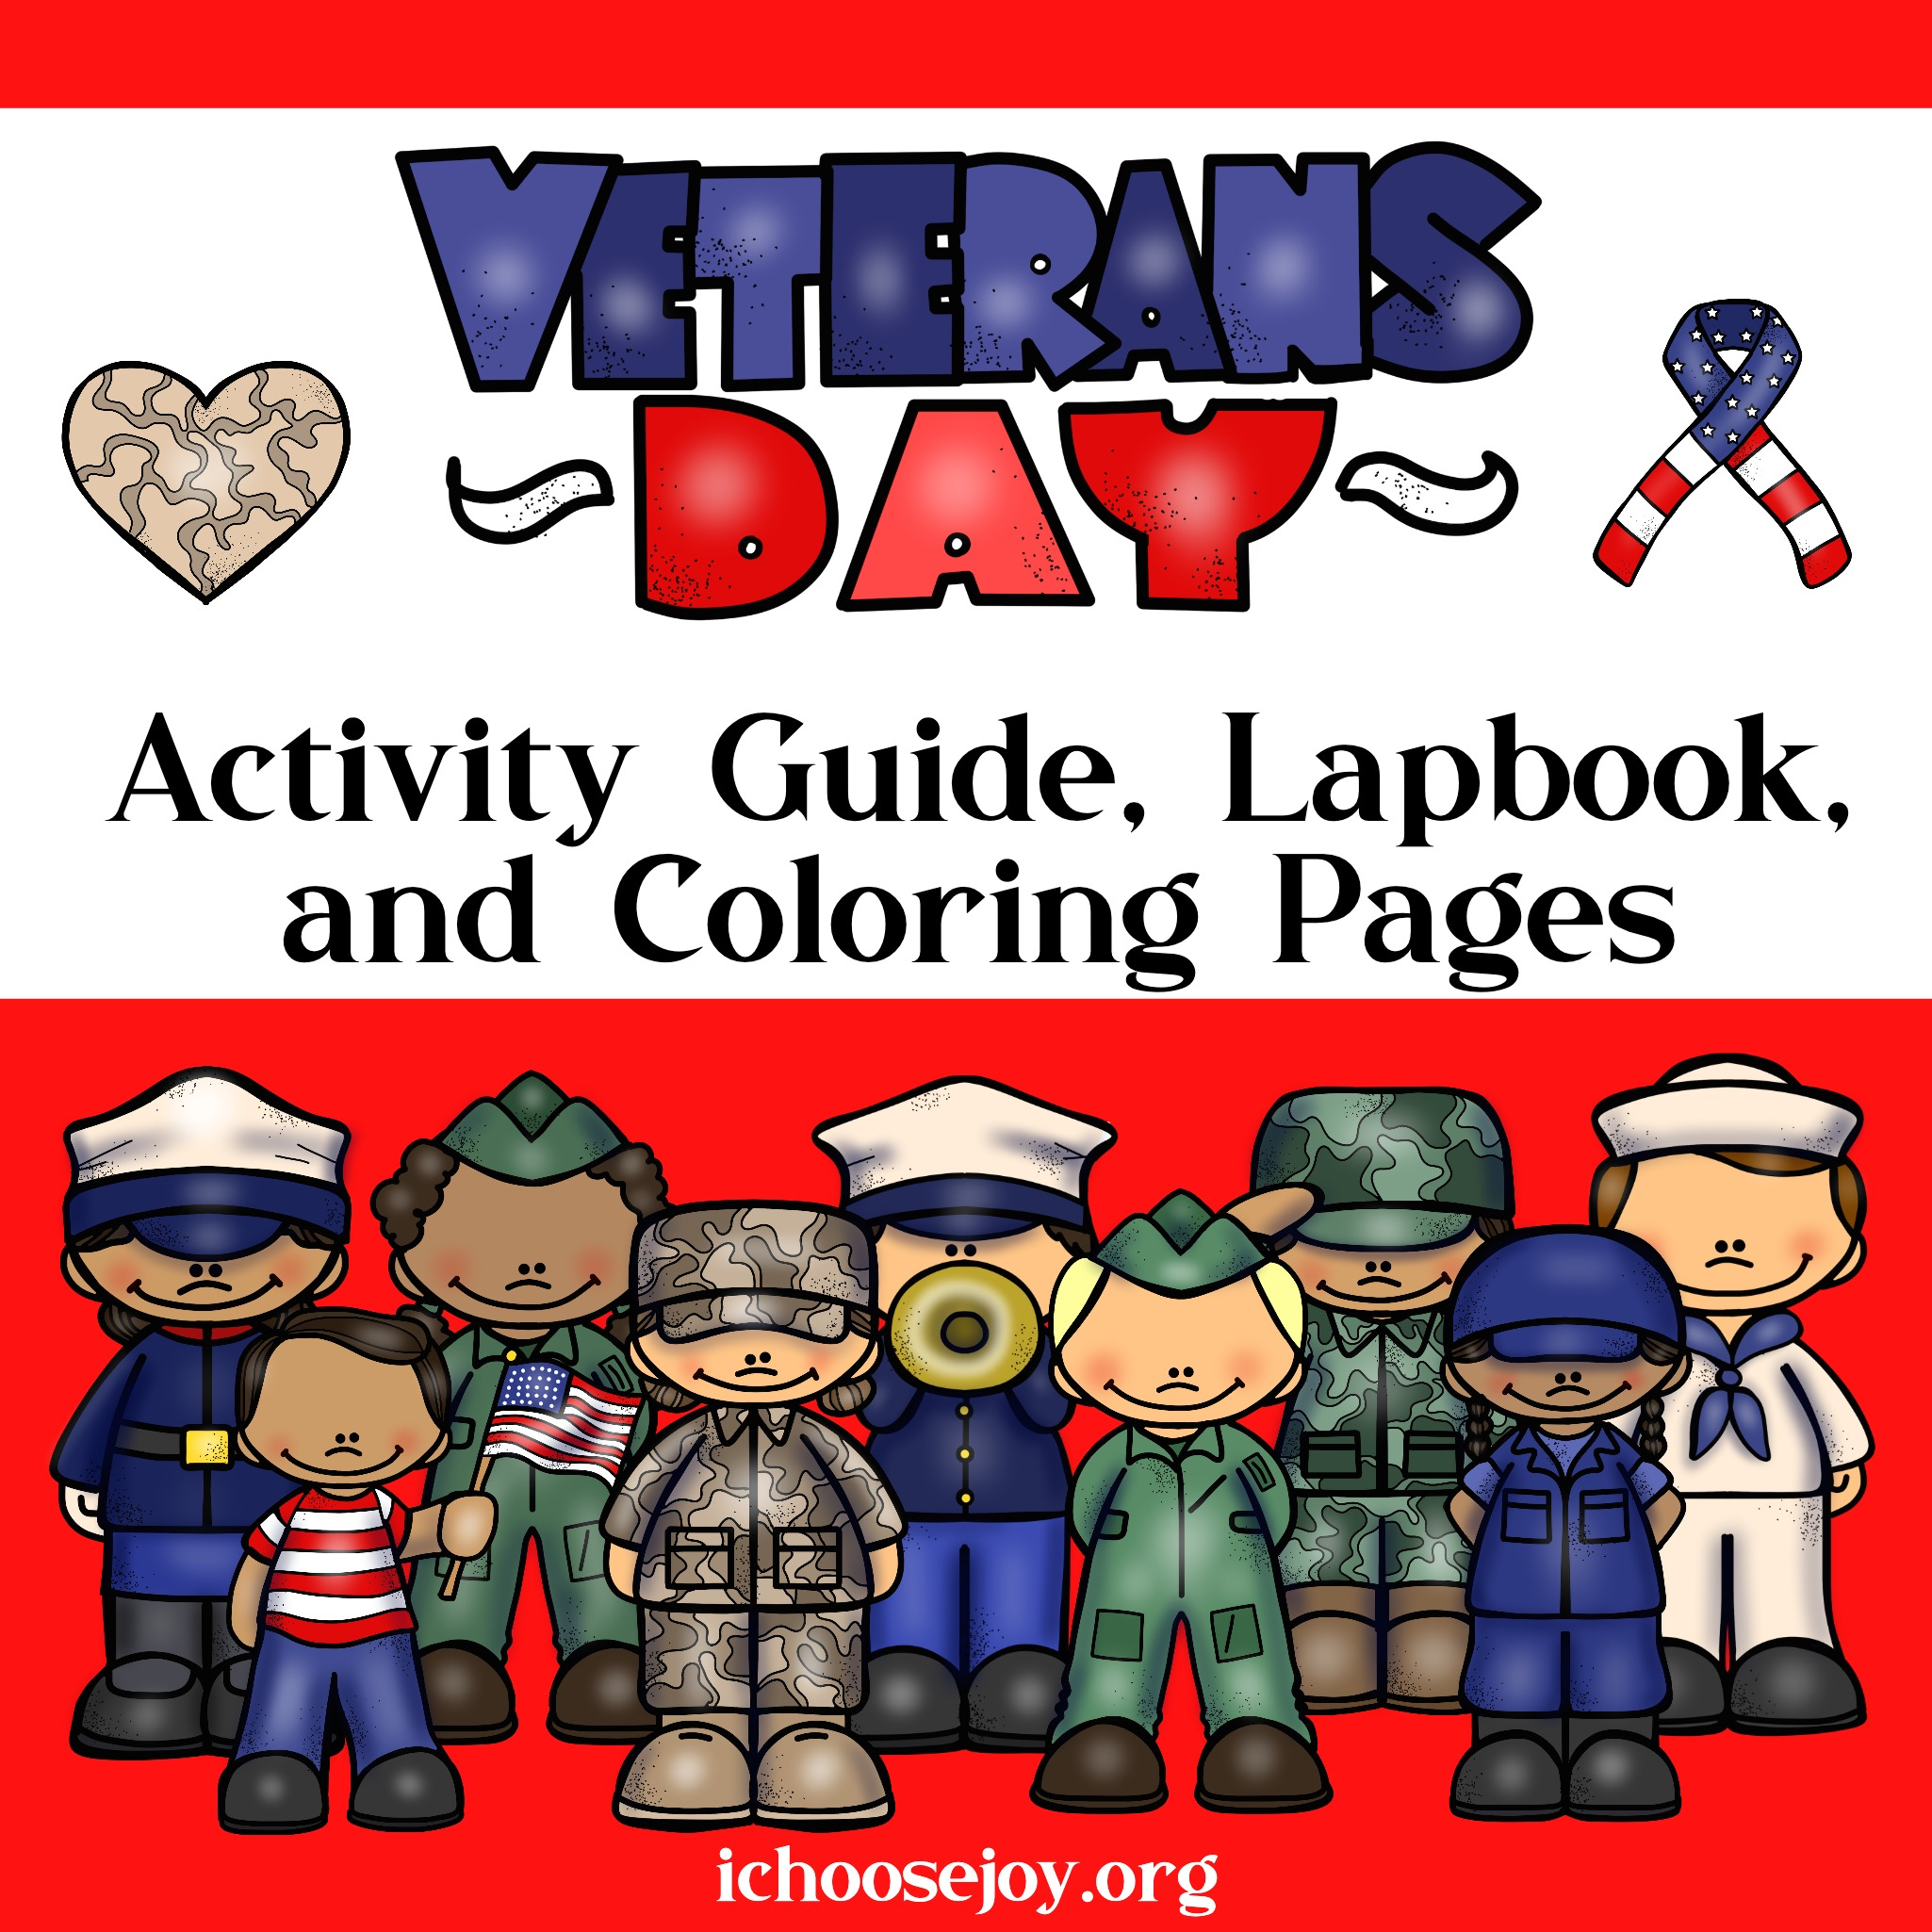 Veterans Day Activity Guide with lapbook and coloring pages